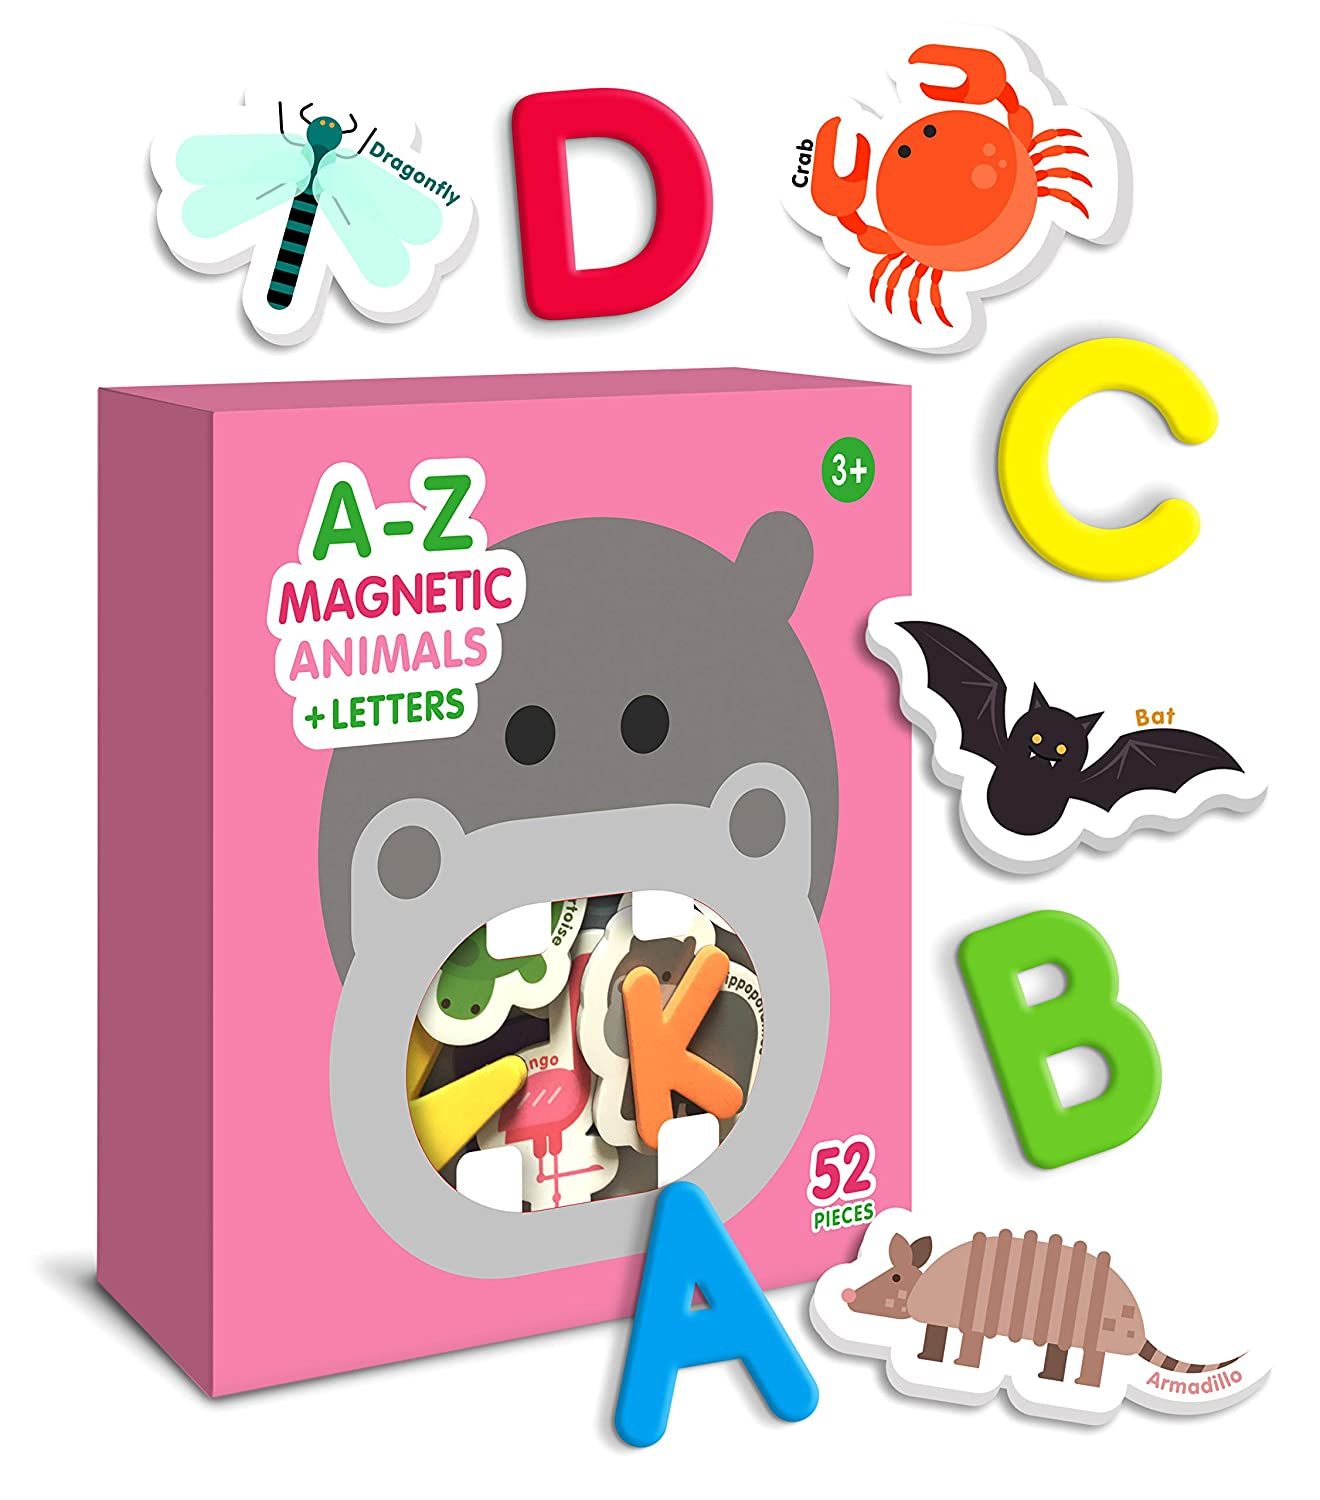 Curious Columbus Animal Magnets For Kids. Includes Alphabet Letters. Set of 52 Pieces. Foam Educational Magnetic Toy Objects For Word Recognition. 26 Picture Fridge Magnets and 26 ABC Letters From A-Z